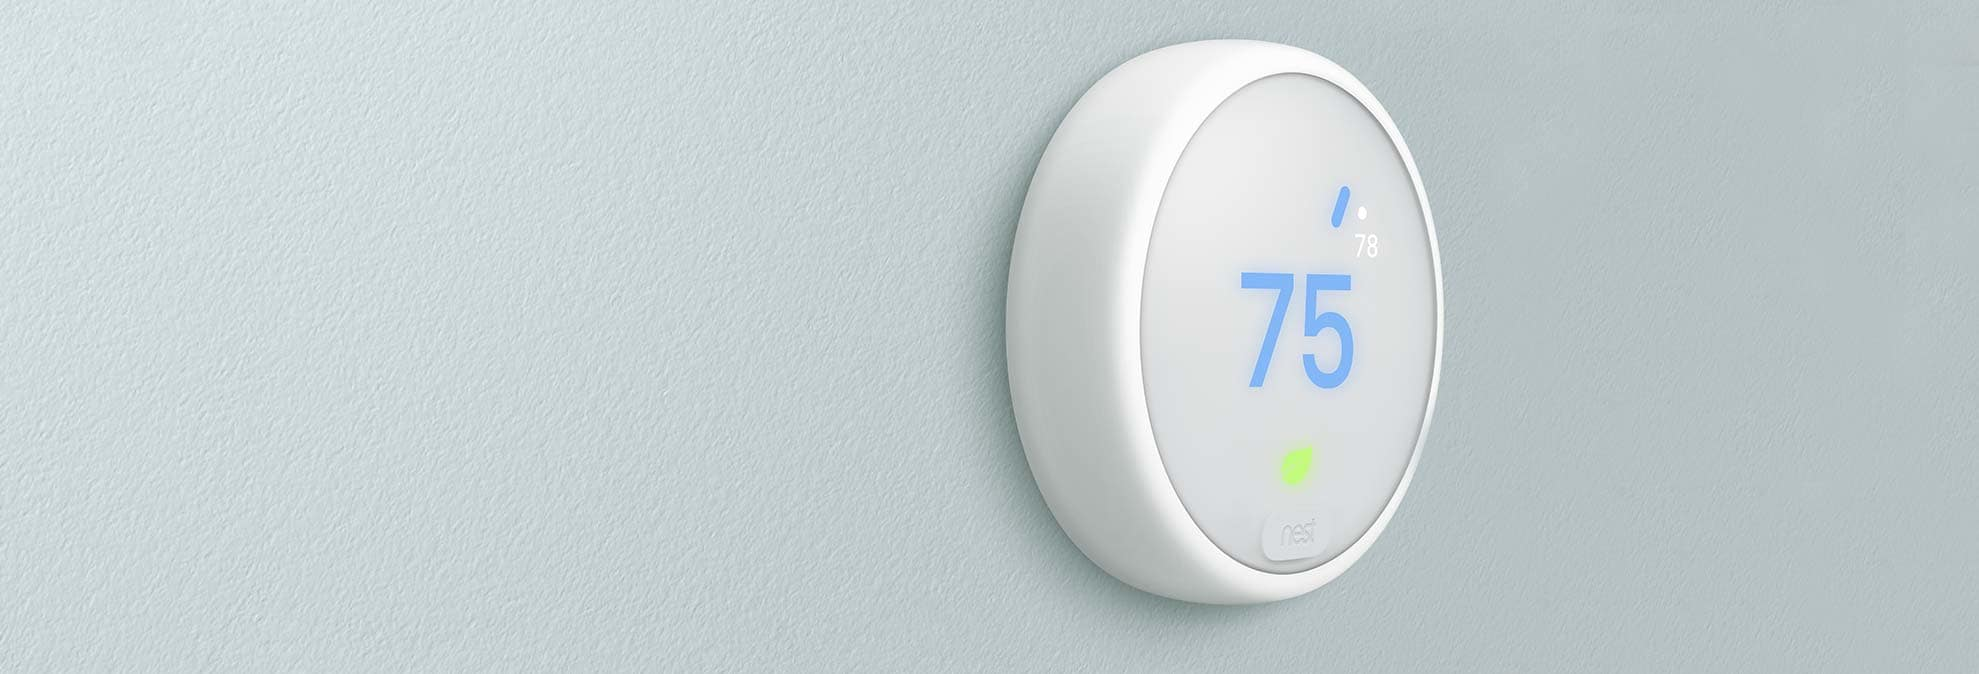 Nest Thermostat E Costs A Lot Less Than Original Consumer Reports 1st Gen Wiring Diagram